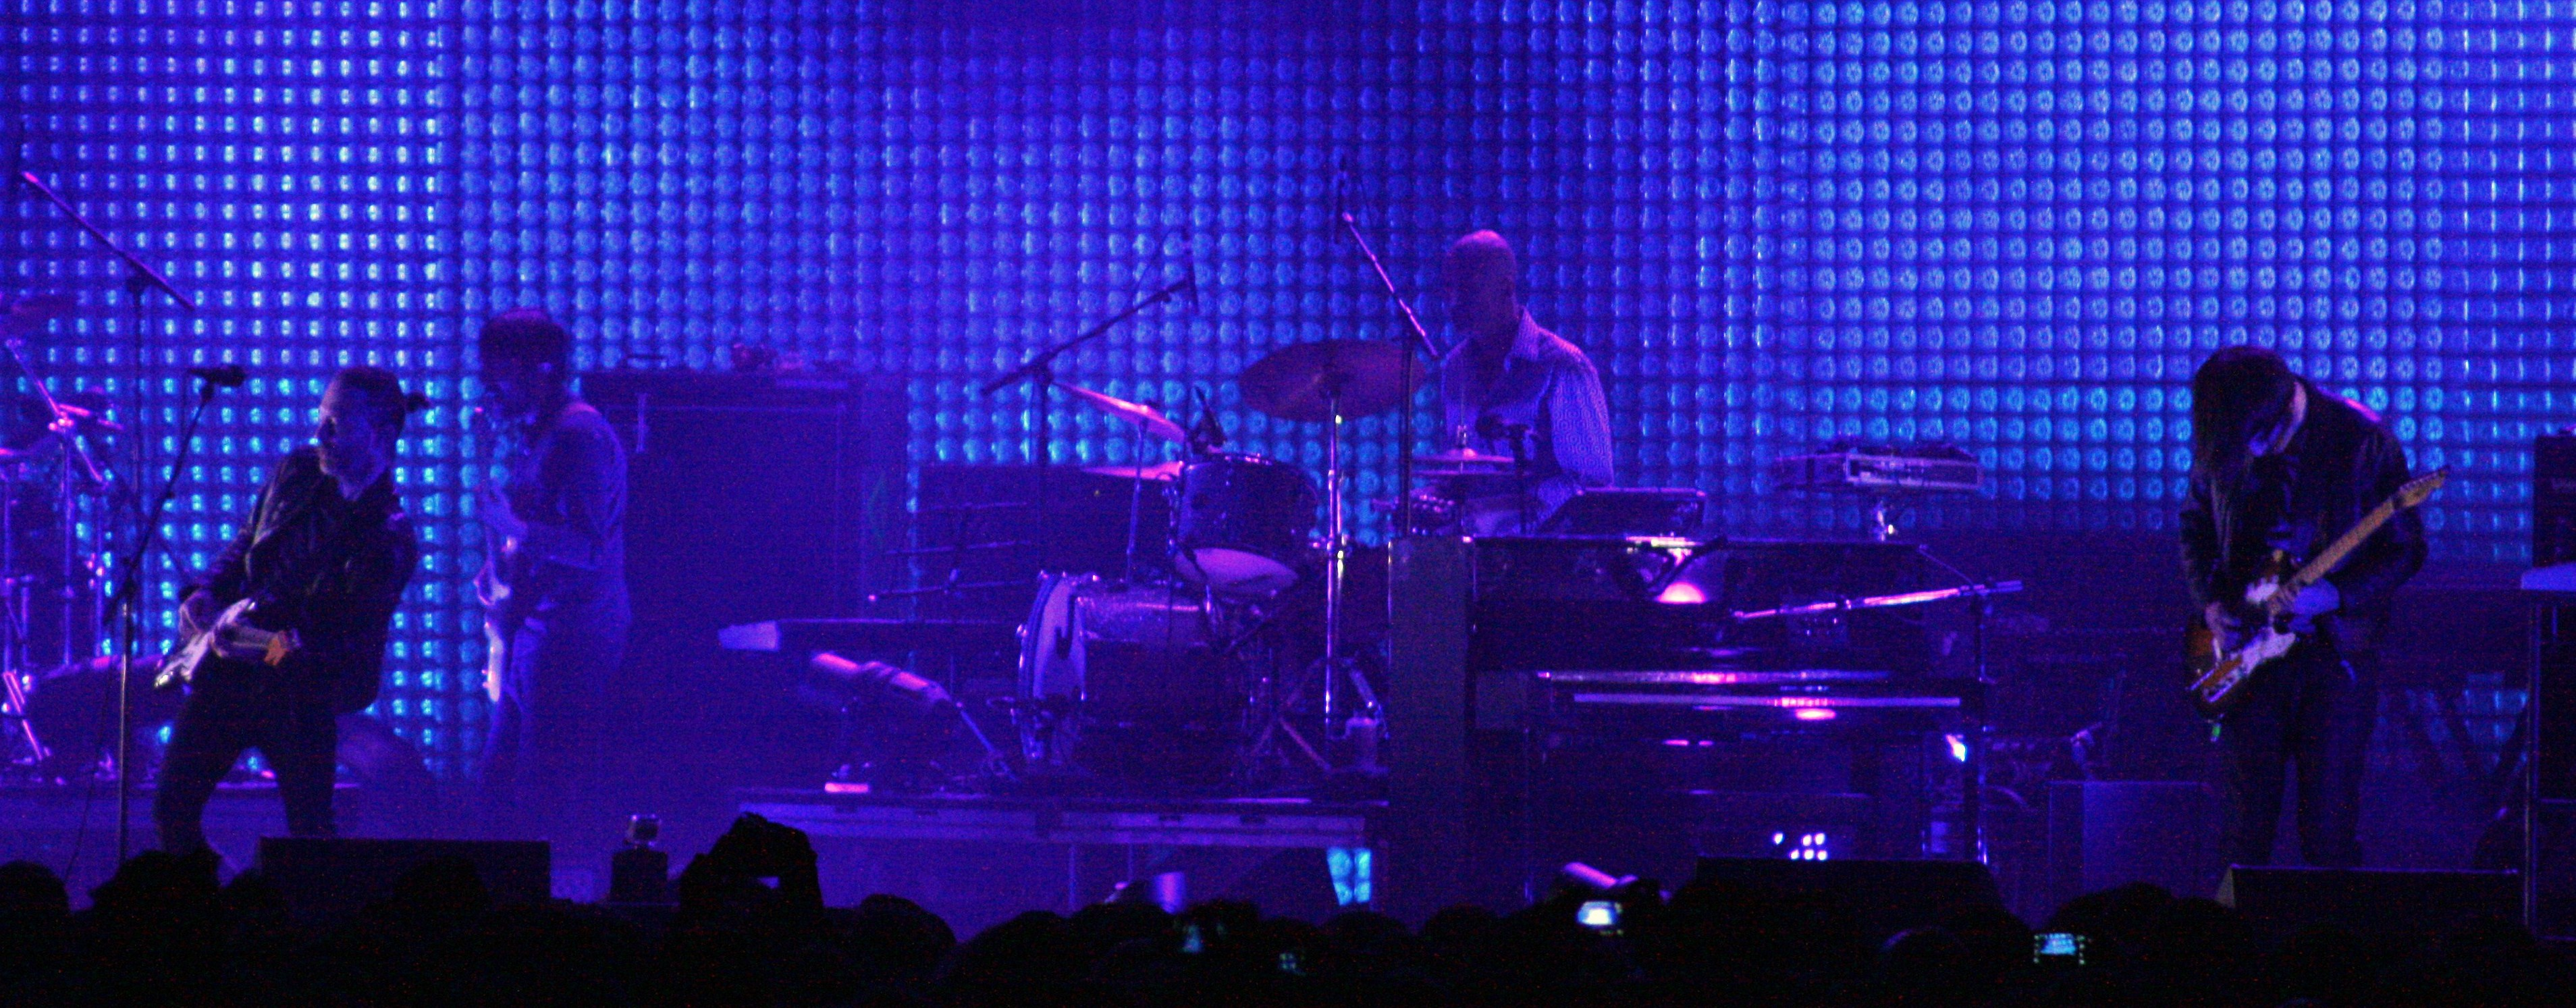 Radiohead Live At The O2 Arena  Every Record Tells A Story. Brampton House For Sale With Basement Apartment. Sump Pump For Basement. Basement Waterproofing Service. Flooring A Basement. Contractor To Finish Basement. How To Install Metal Studs In A Basement. 4 Bedroom Ranch House Plans With Walkout Basement. Leveling Basement Floor